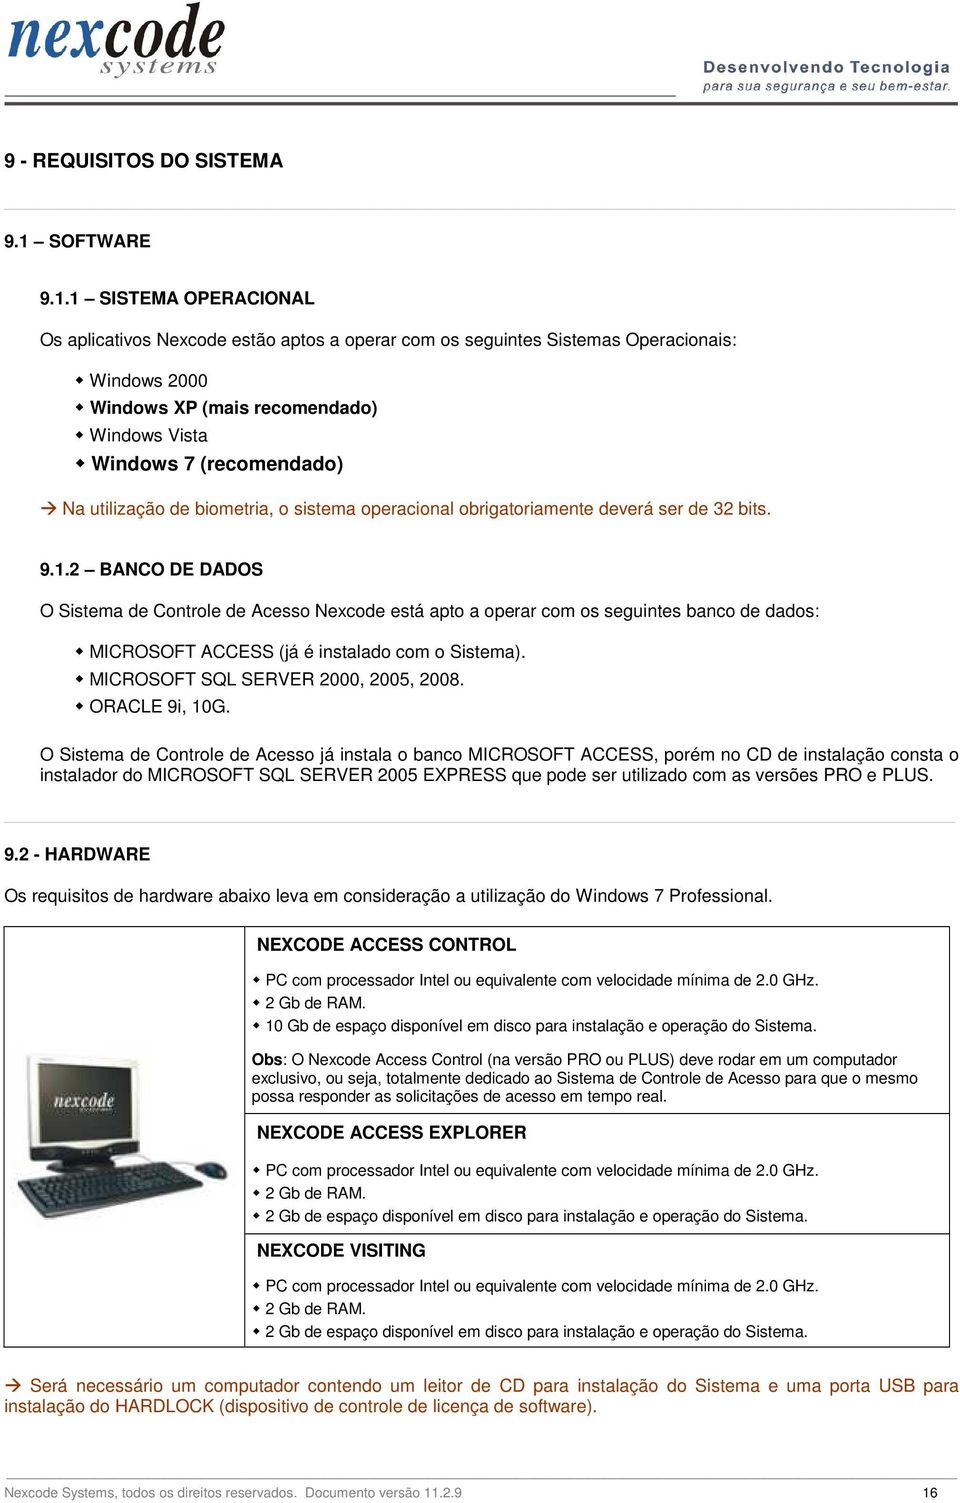 1 SISTEMA OPERACIONAL Os aplicativos Nexcode estão aptos a operar com os seguintes Sistemas Operacionais: Windows 2000 Windows XP (mais recomendado) Windows Vista Windows 7 (recomendado) Na